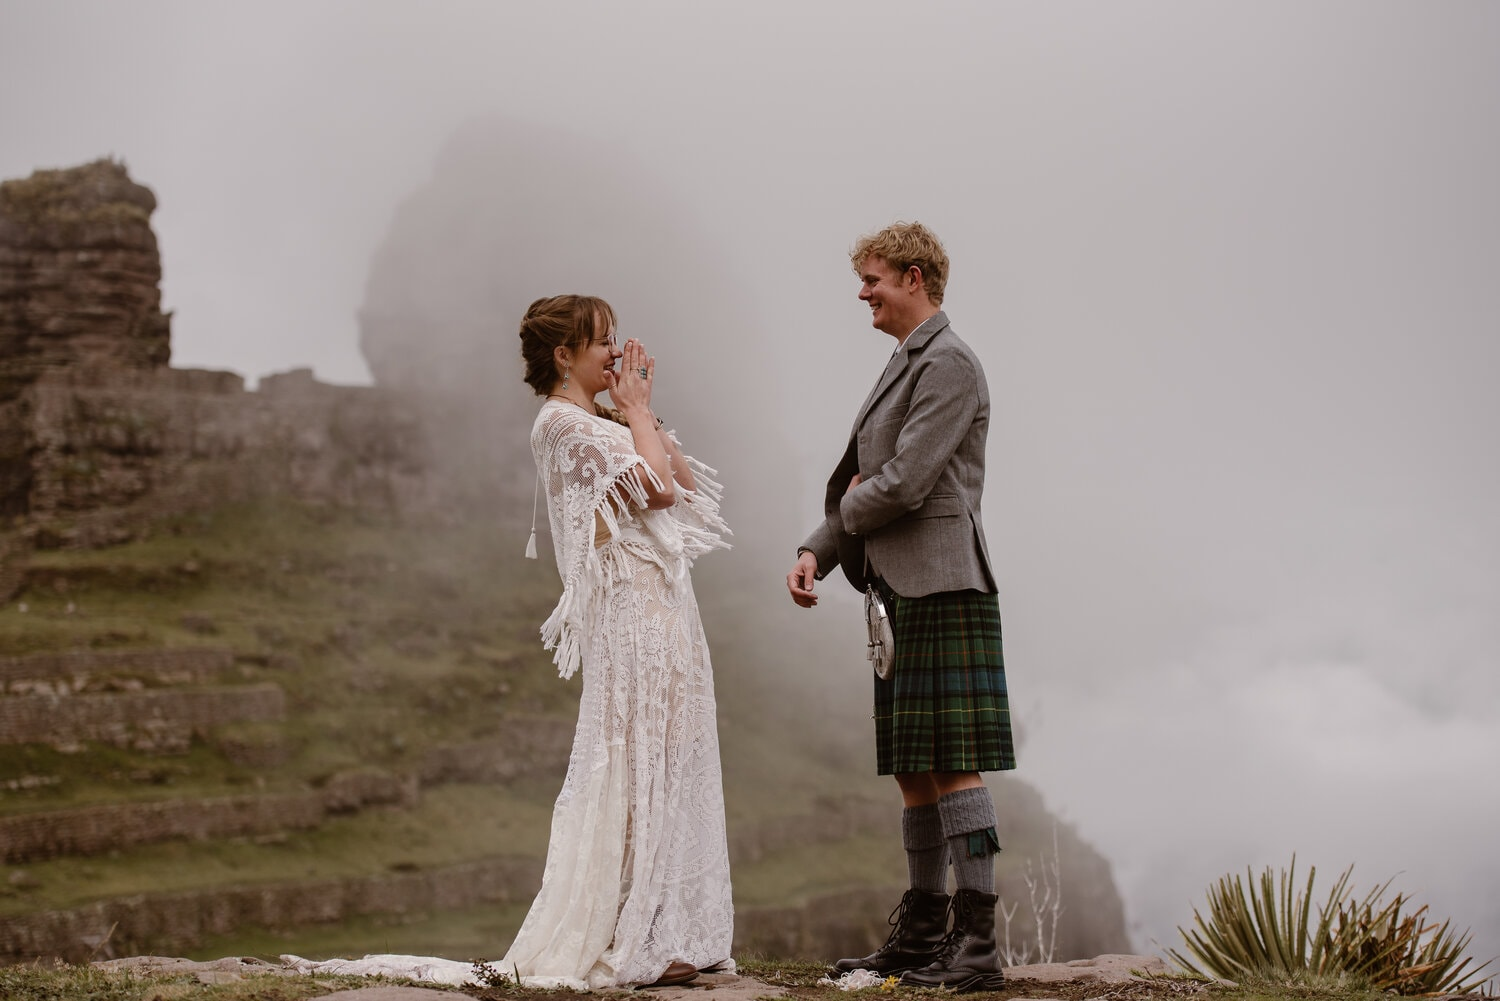 A bride in a lace wedding gown laughs as her Scottish husband looks on.